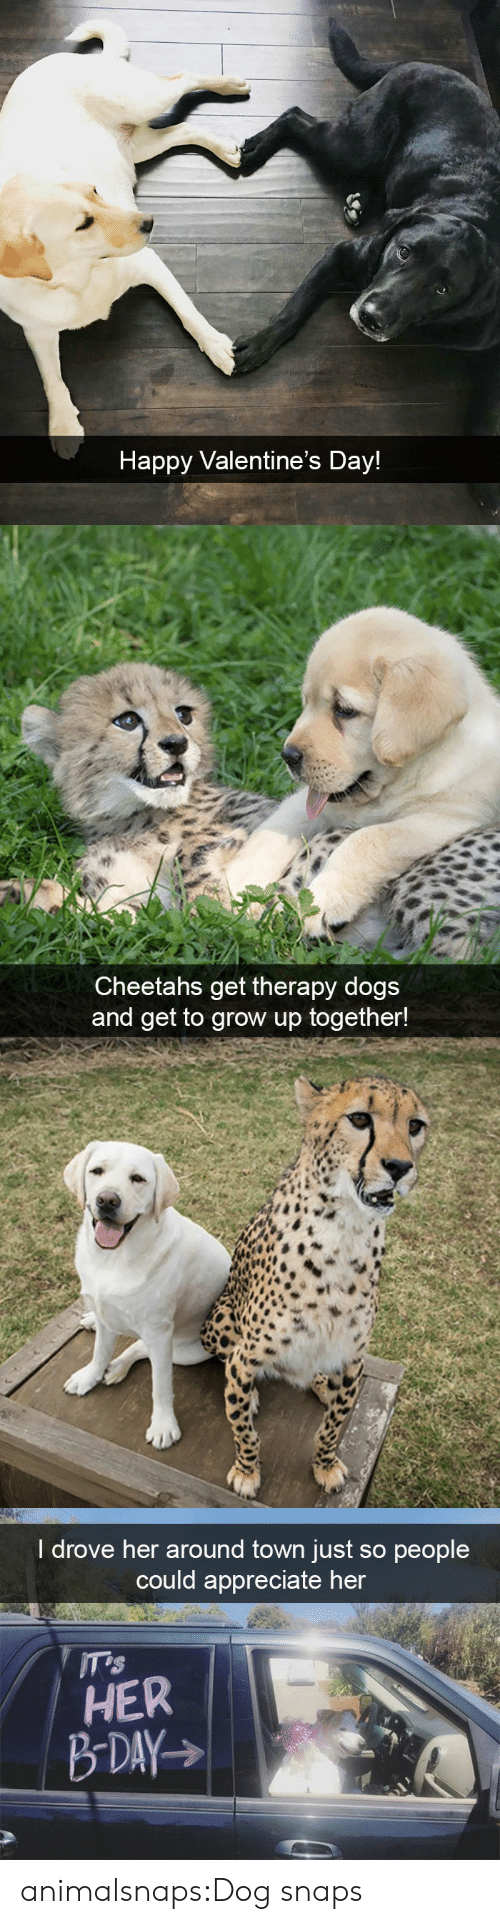 Dogs, Target, and Tumblr: Happy Valentine's Day!   Cheetahs get therapy dogs  and get to grow up together!   I drove her around town just so people  could appreciate her  HER animalsnaps:Dog snaps